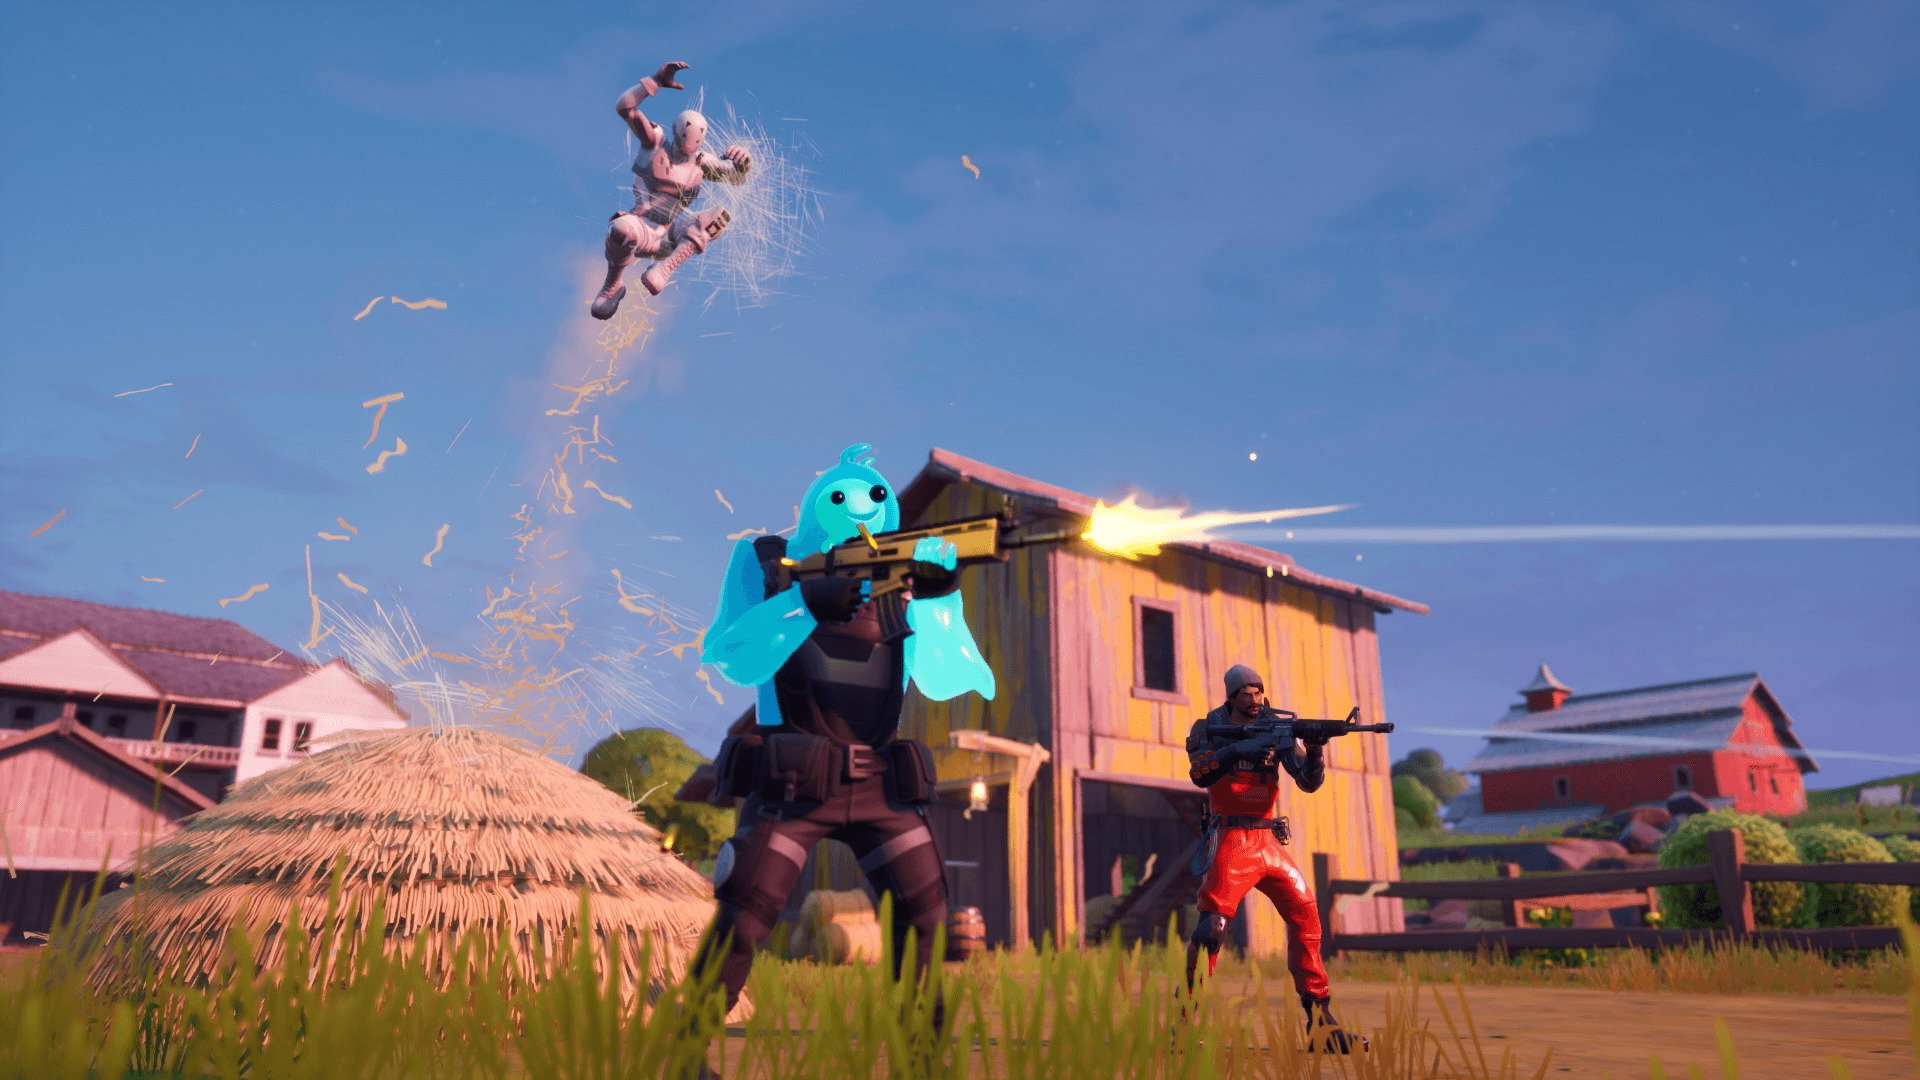 Your first Fortnite Chapter 2 win was probably against bots